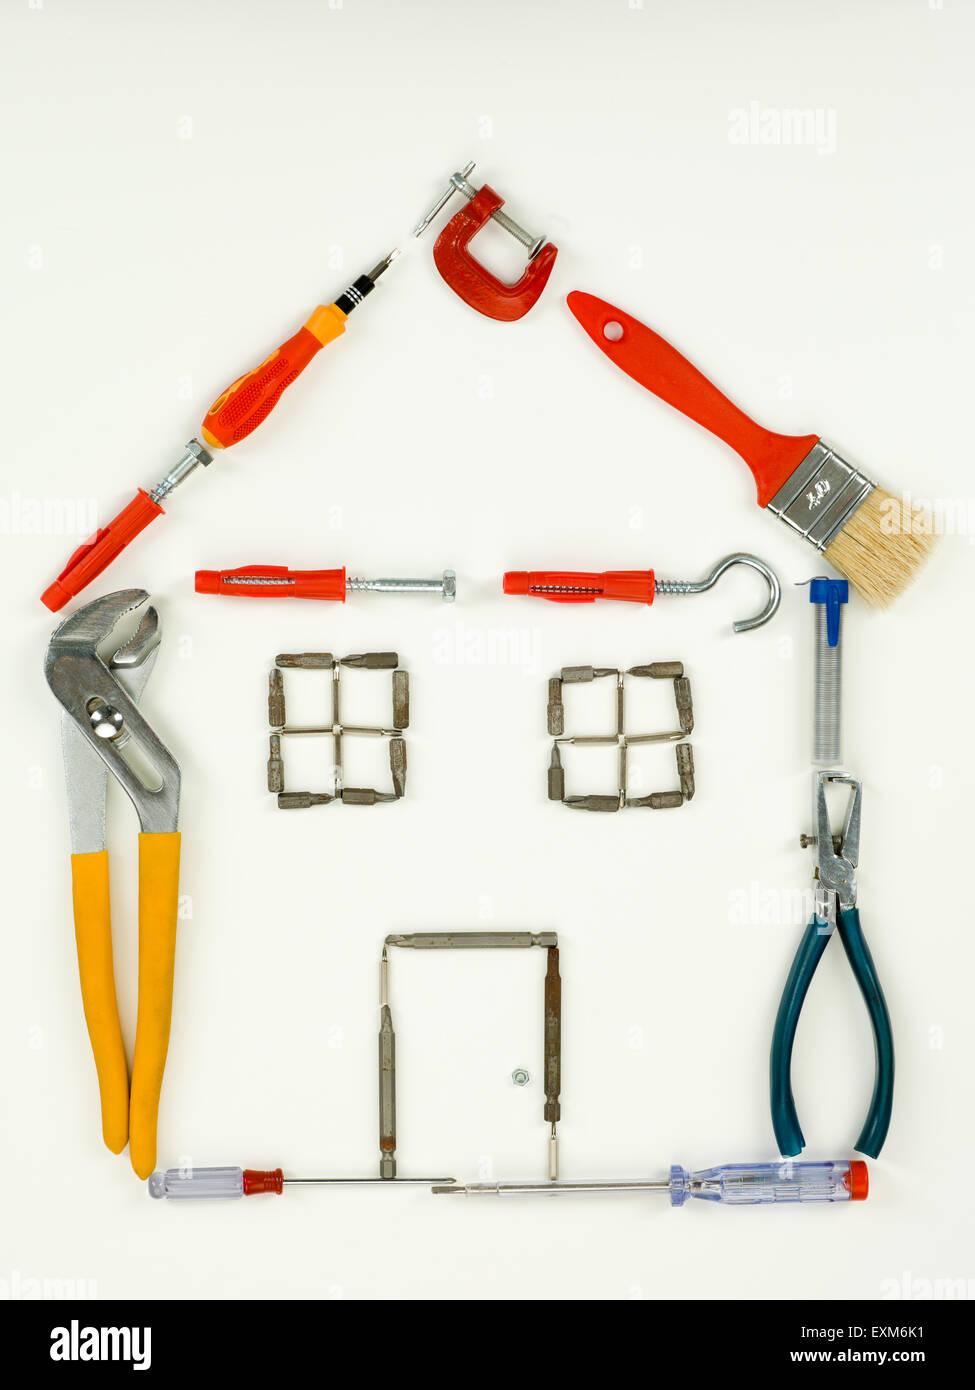 outline of house made with household and construction tools, on white background. top view - Stock Image